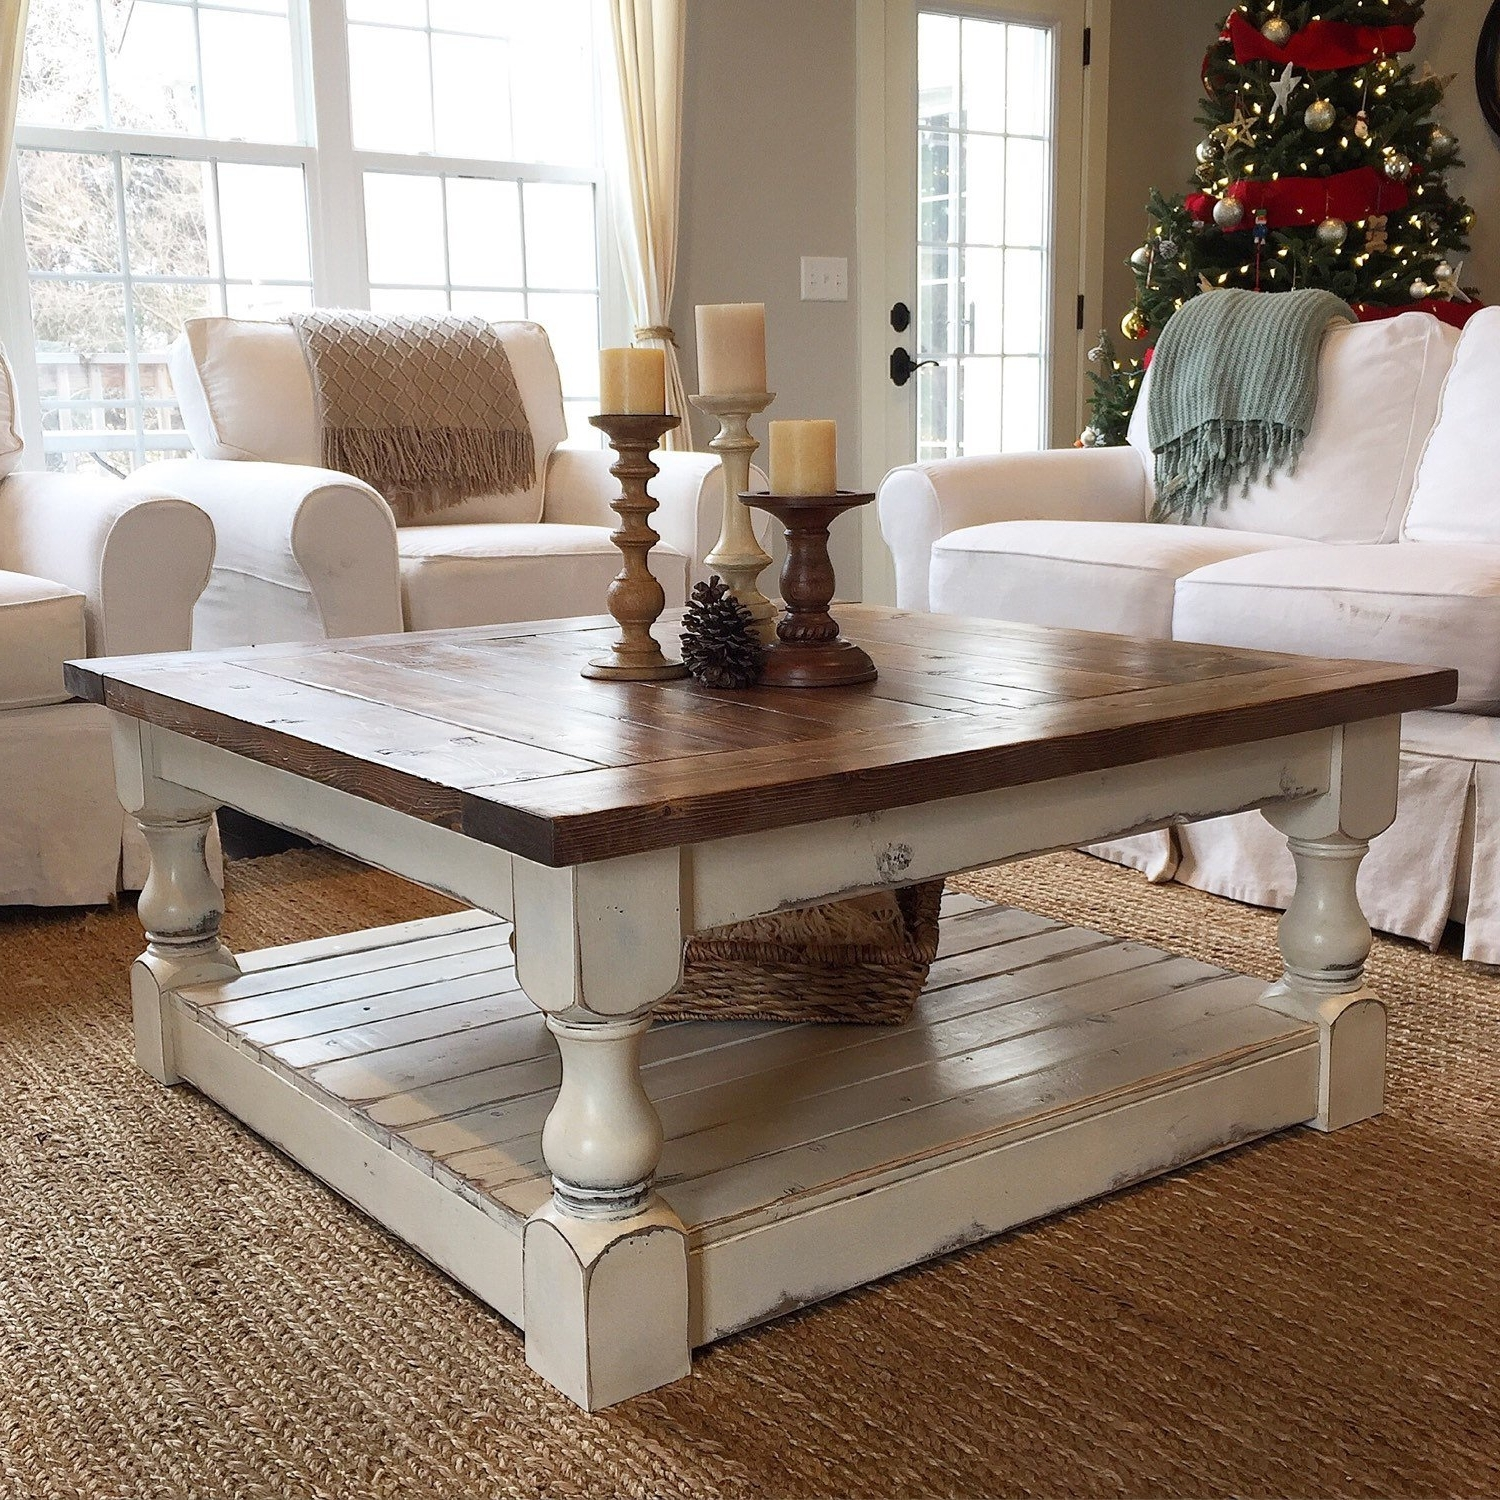 Etsy In Well Known Large Scale Chinese Farmhouse Coffee Tables (Gallery 14 of 20)